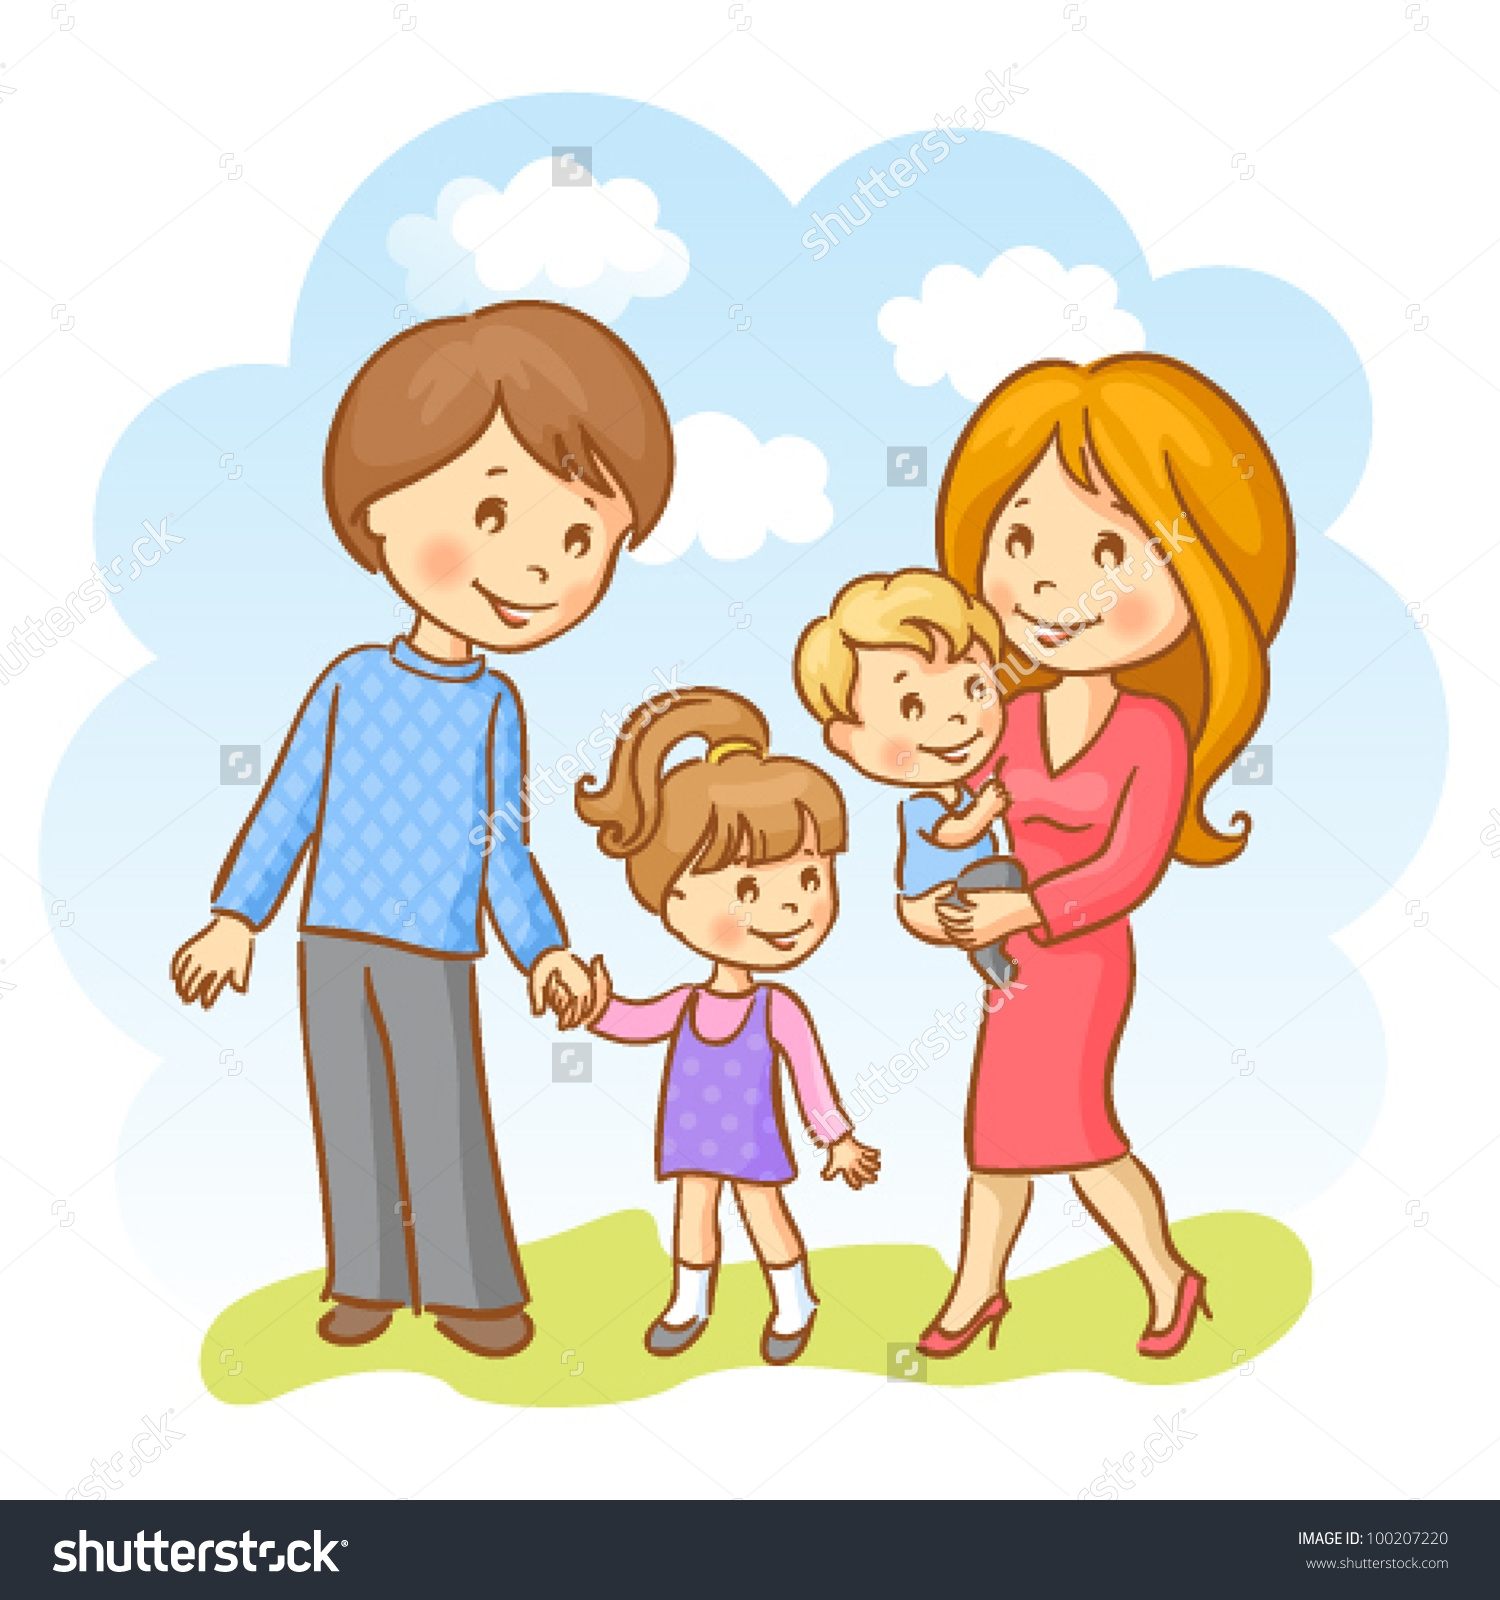 Family clipart 5 people 2 daughters 1 son picture transparent library Image Gallery of Family Clipart 4 People 2 Daughters picture transparent library